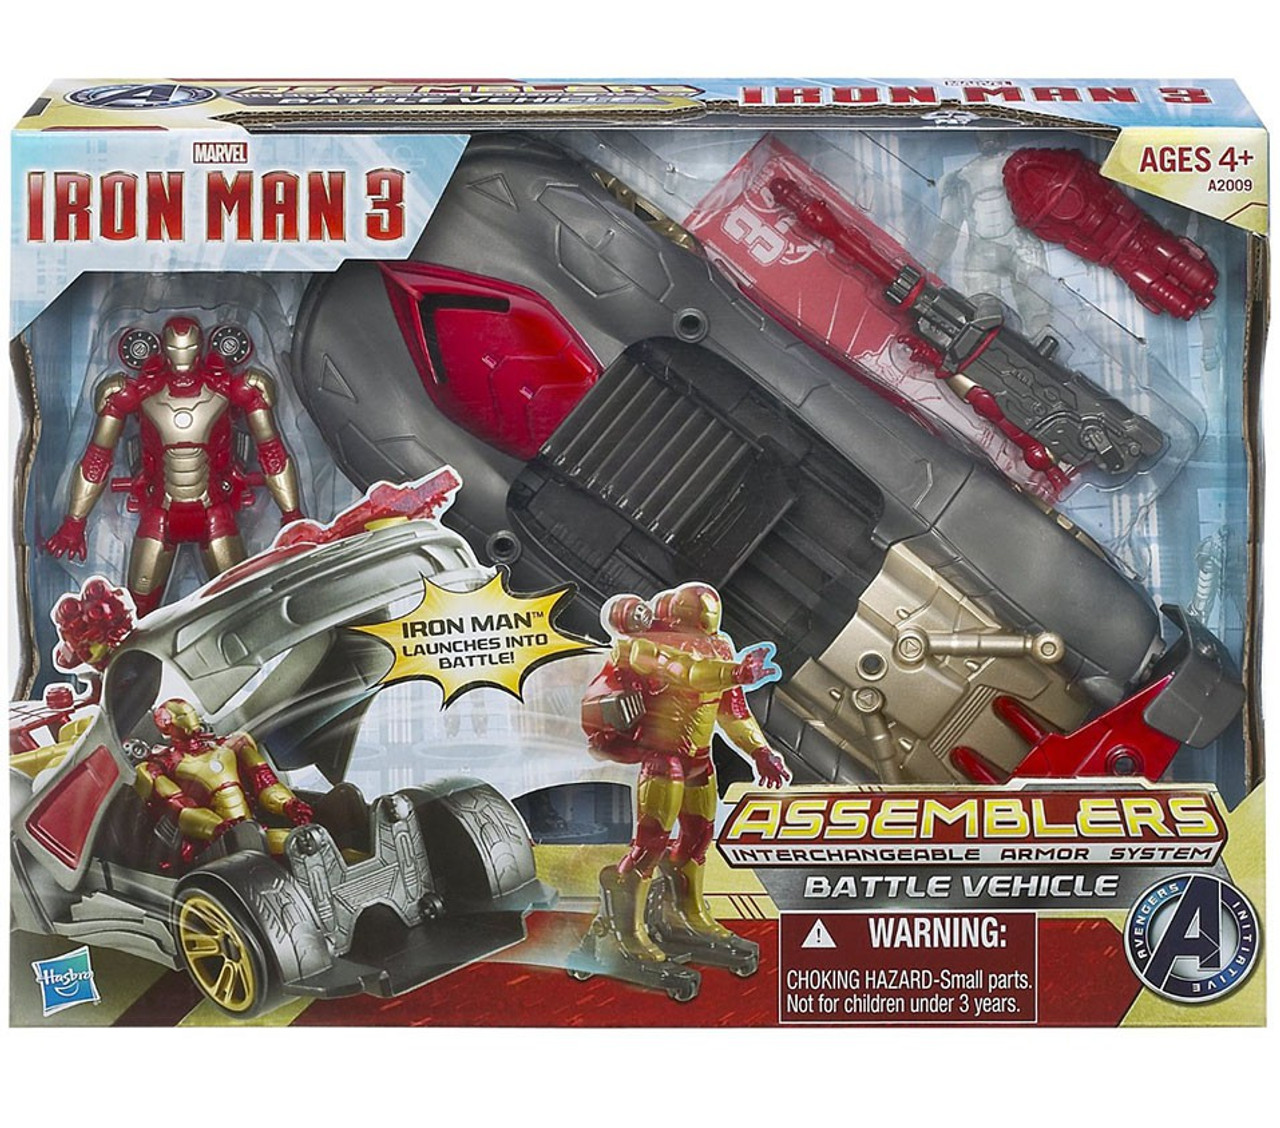 Iron Man 3 Assemblers Interchangeable Armor System Battle Vehicle Action Figure Vehicle